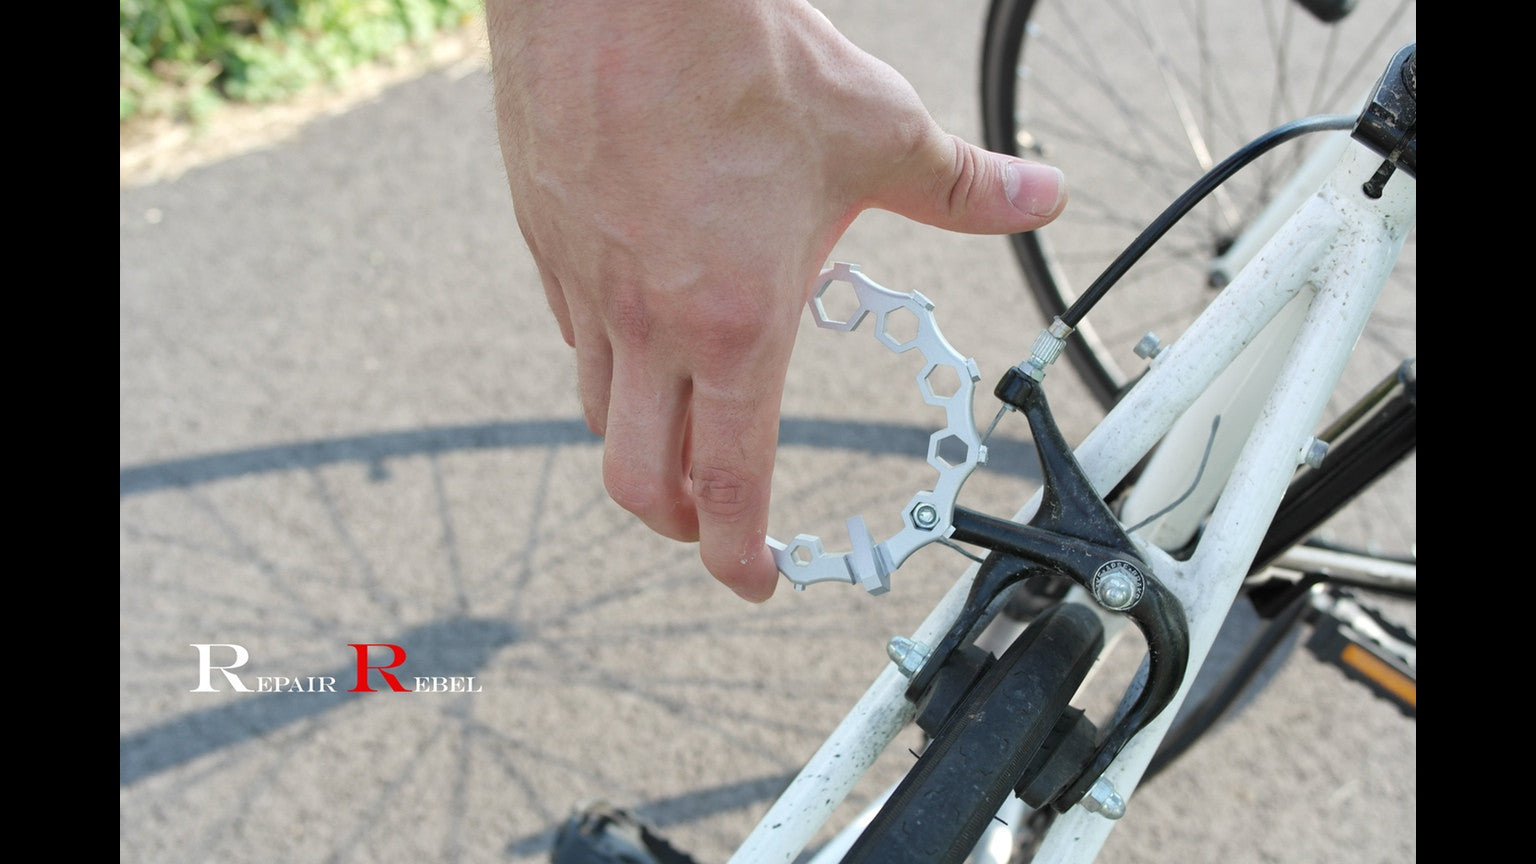 The Repair Rebel Multi-tool - The Cyclists Third Wheel!